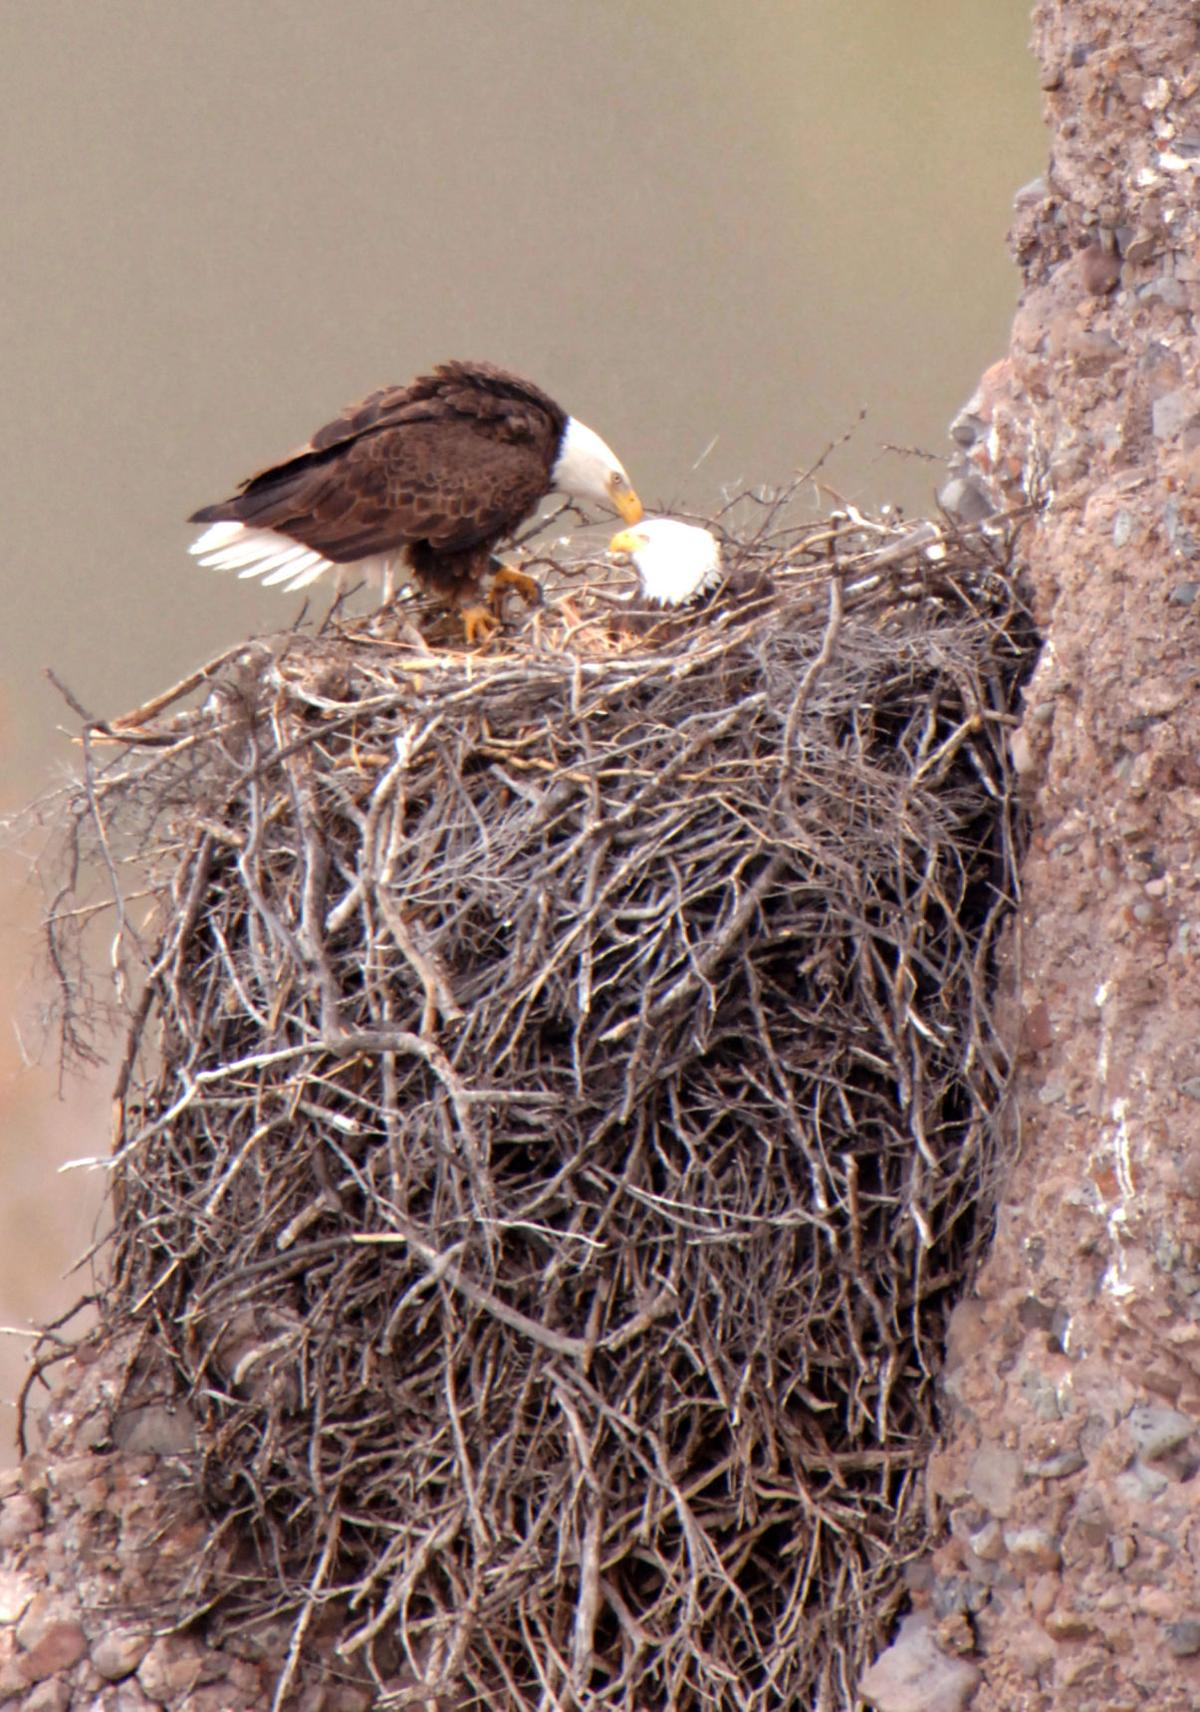 Bald eagles in Arizona